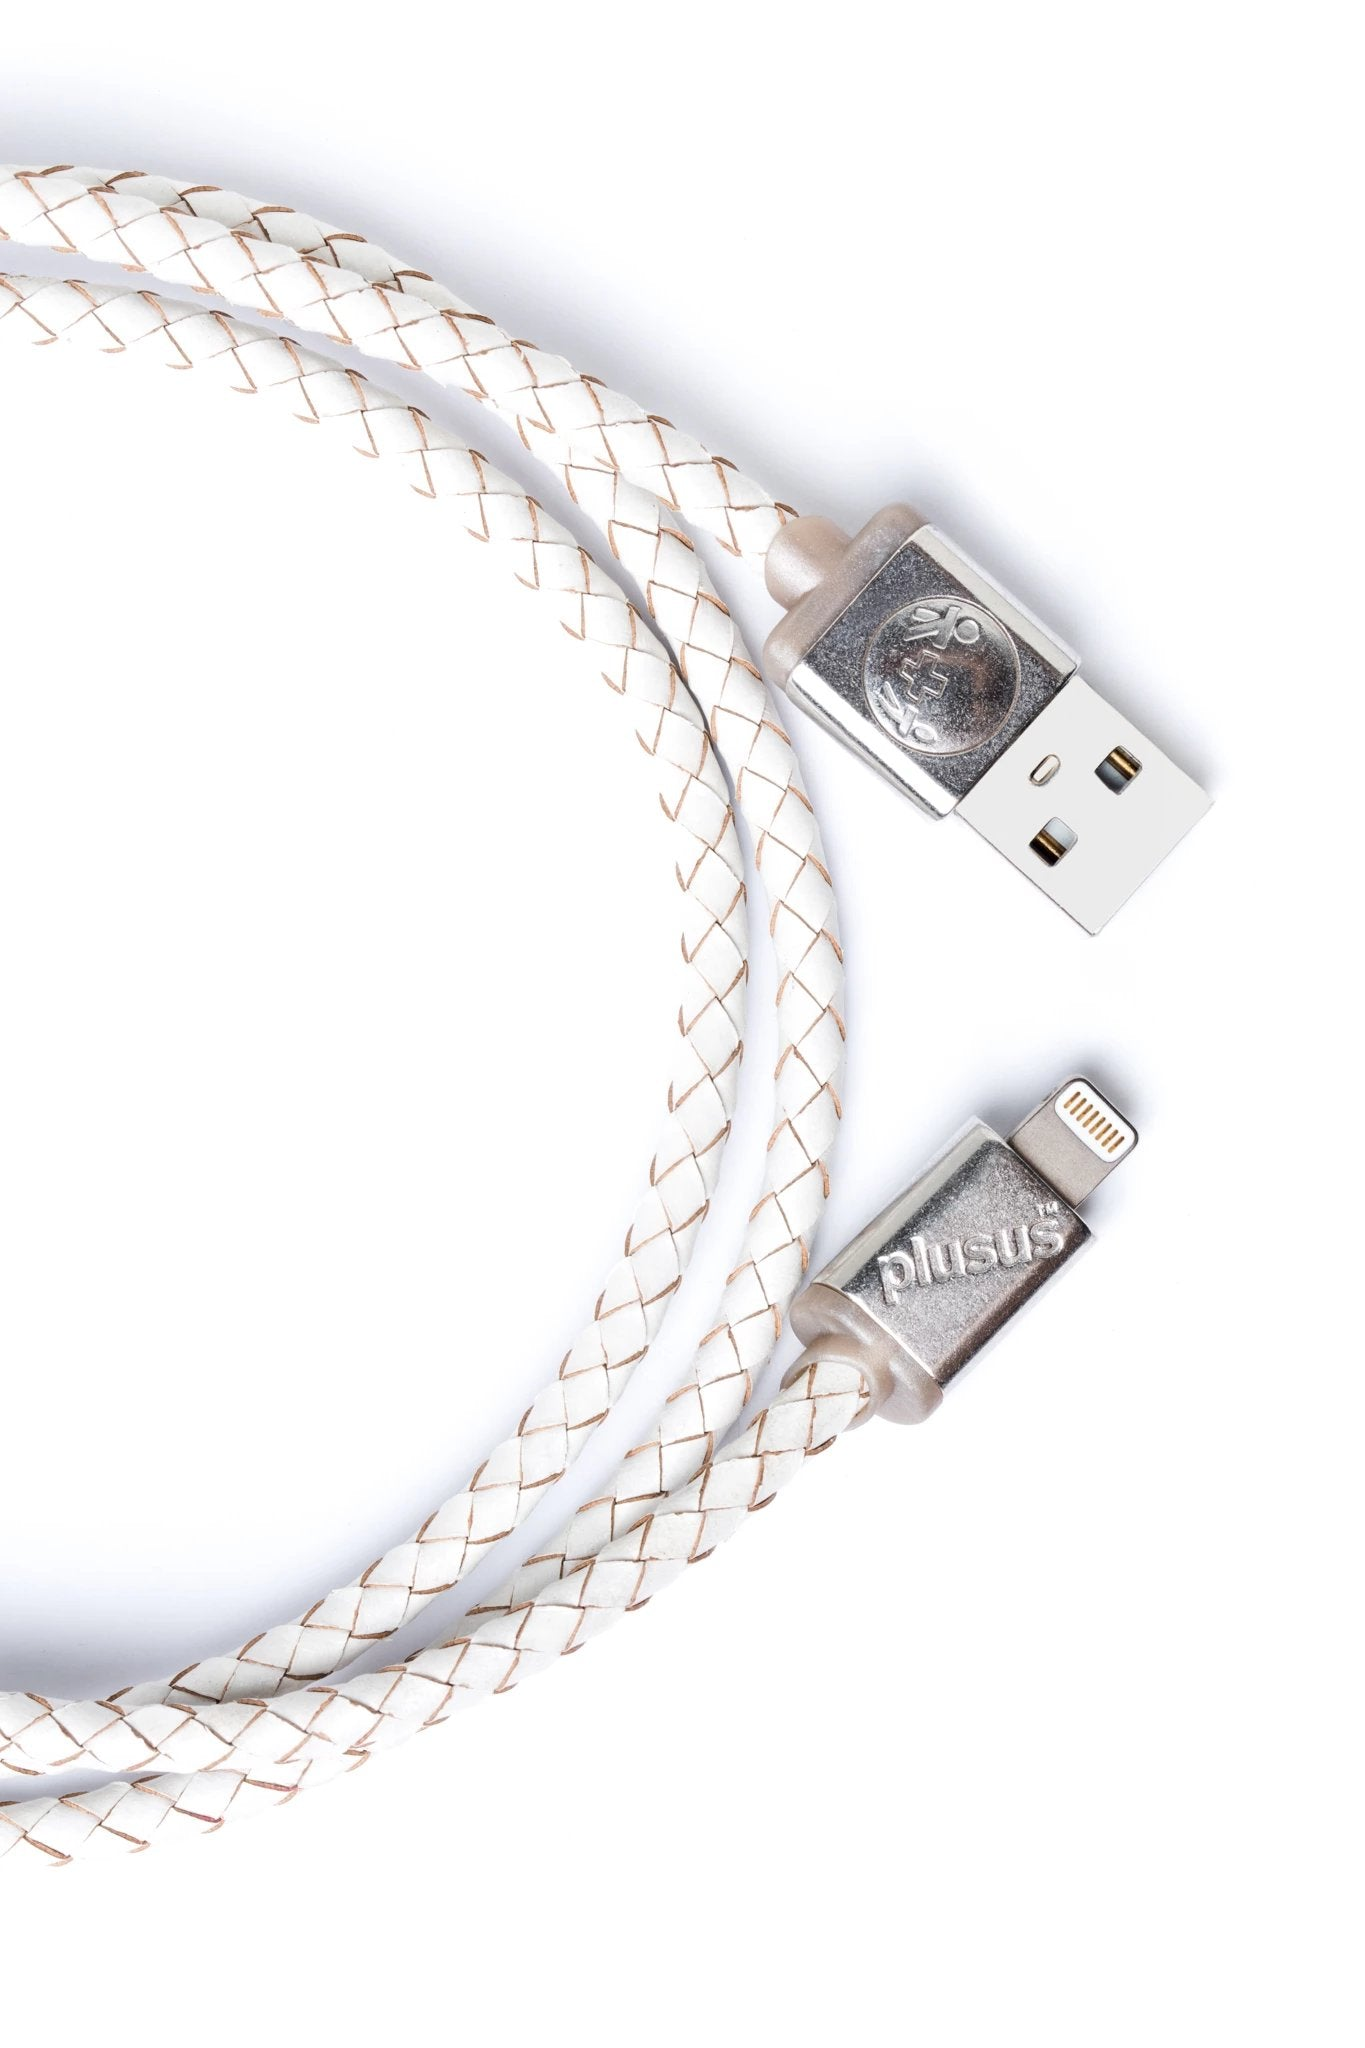 Lifestar Premium - Cross White -Apple MFi Certified Lightning